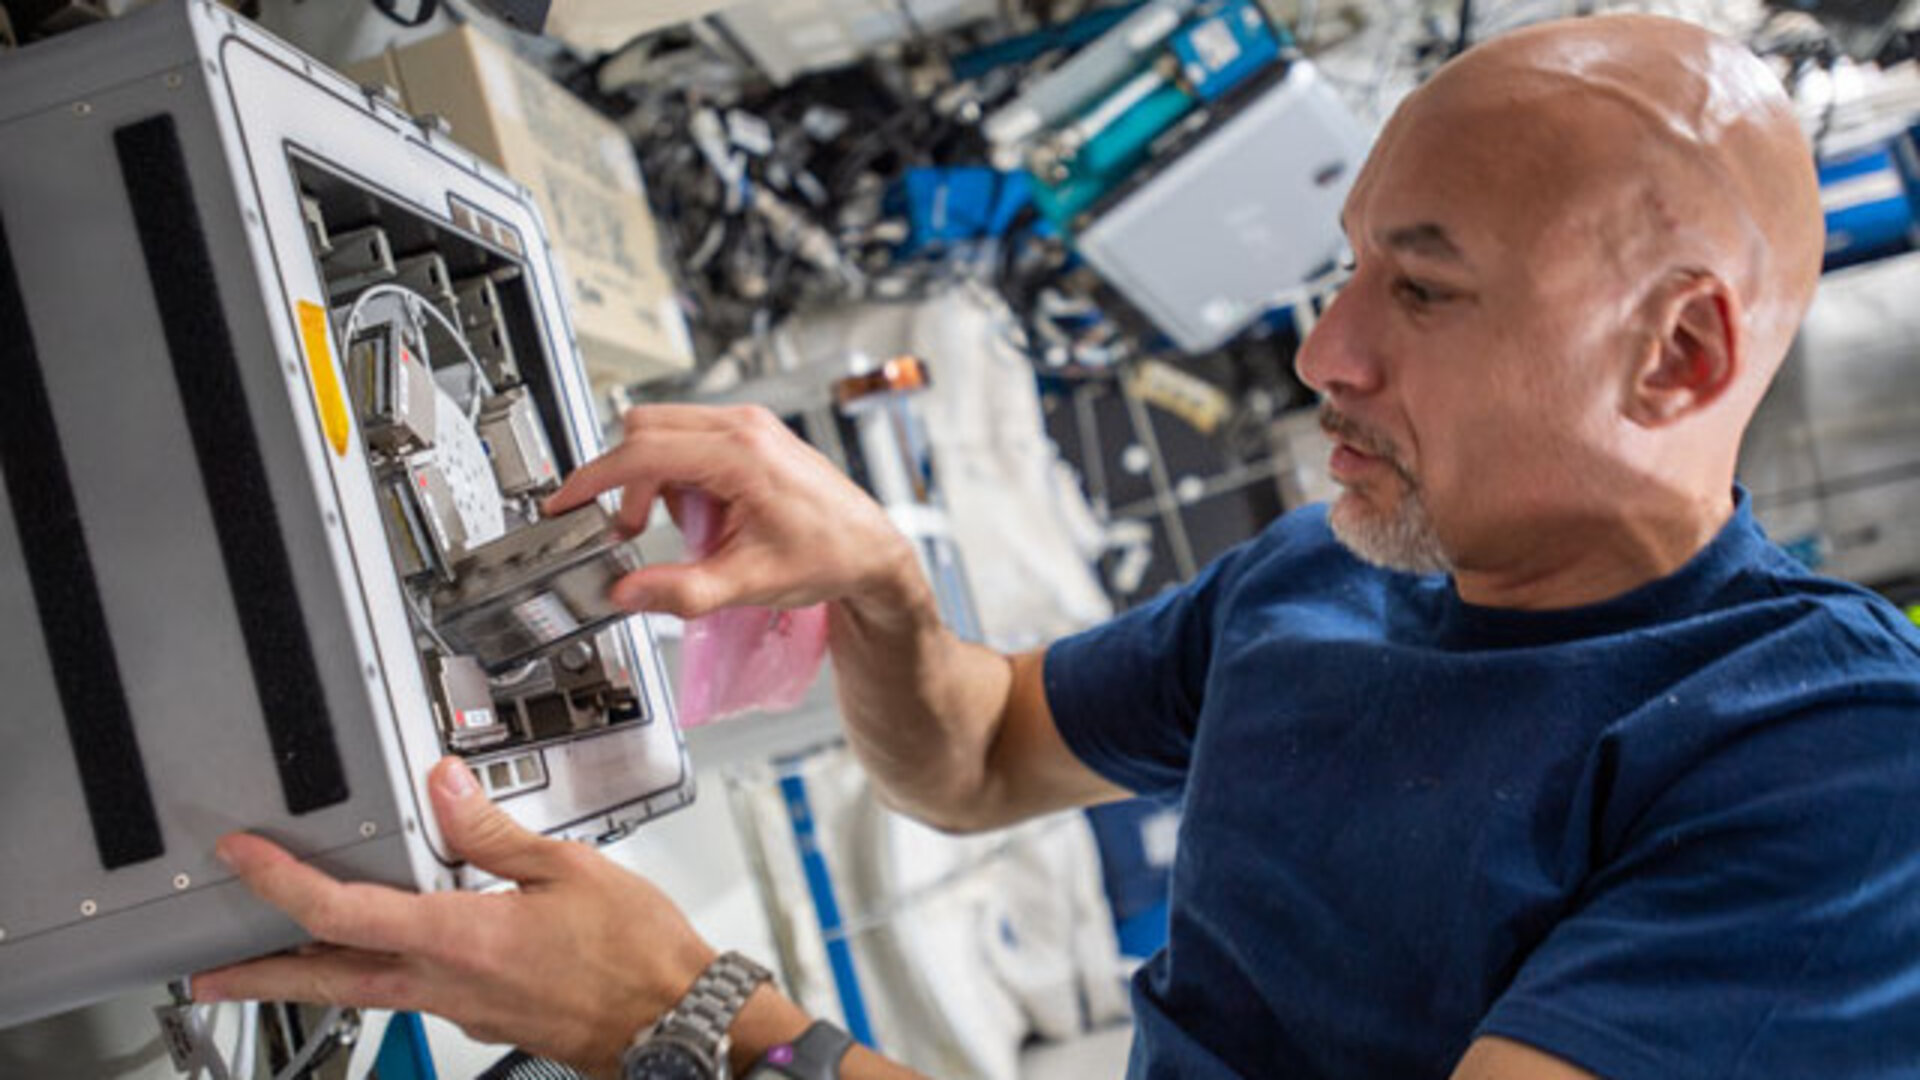 ESA astronaut Luca Parmitano installs a device to test how biofilms grow in altered gravity conditions